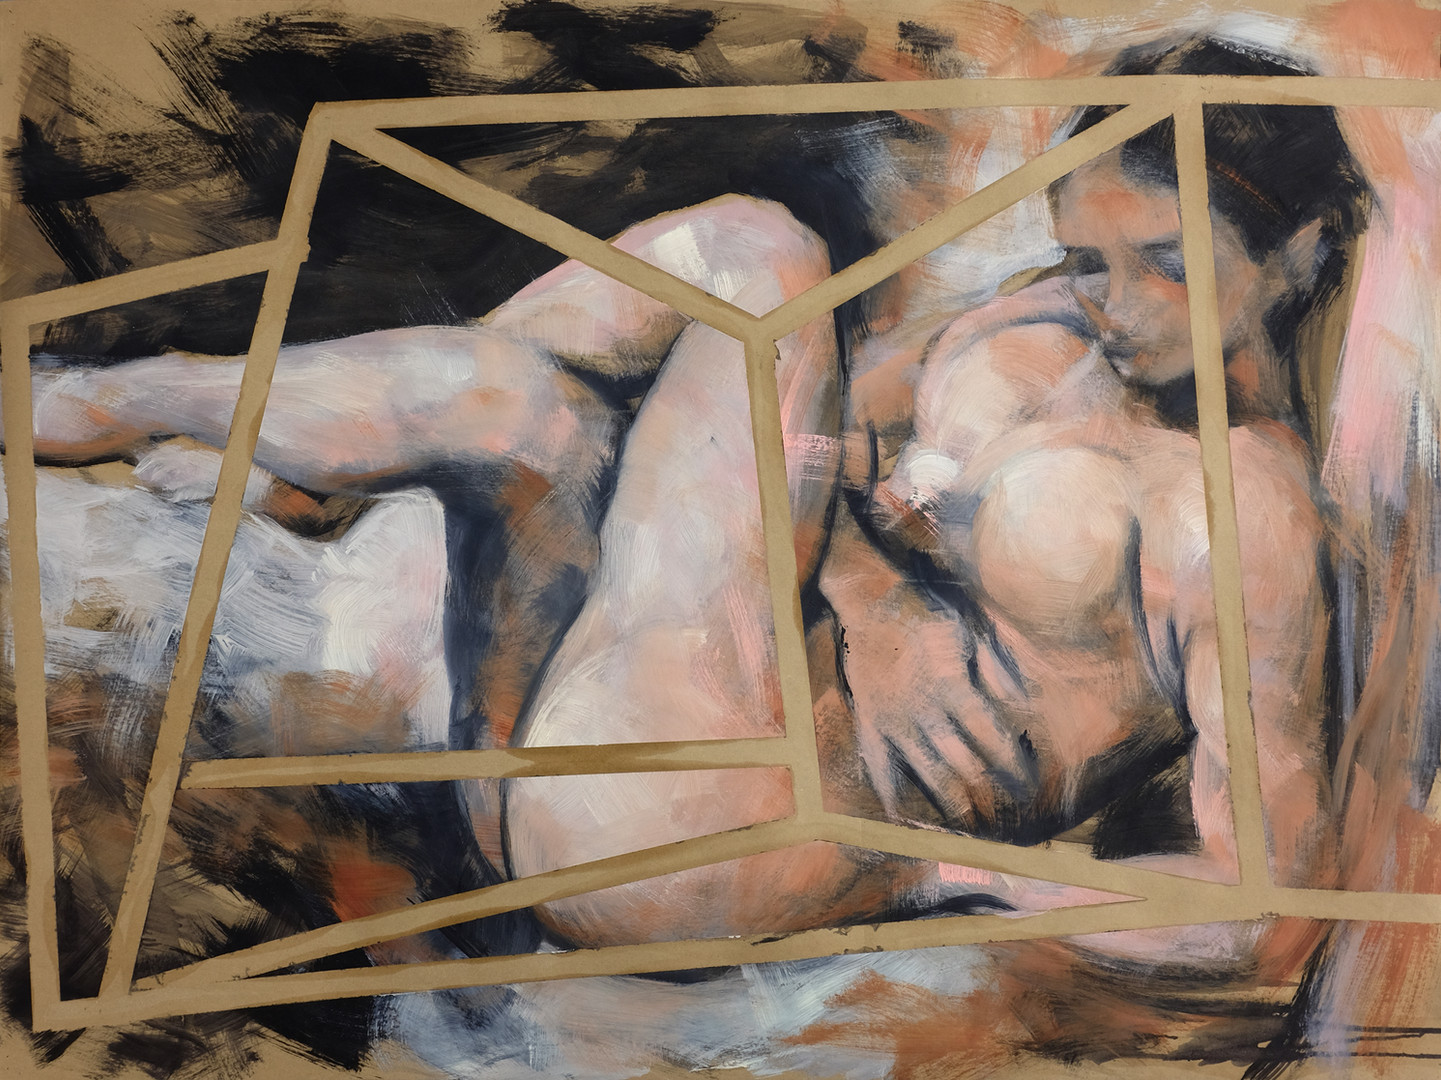 Nude22 35x47 inches Acrylic & Oils on paper 2016